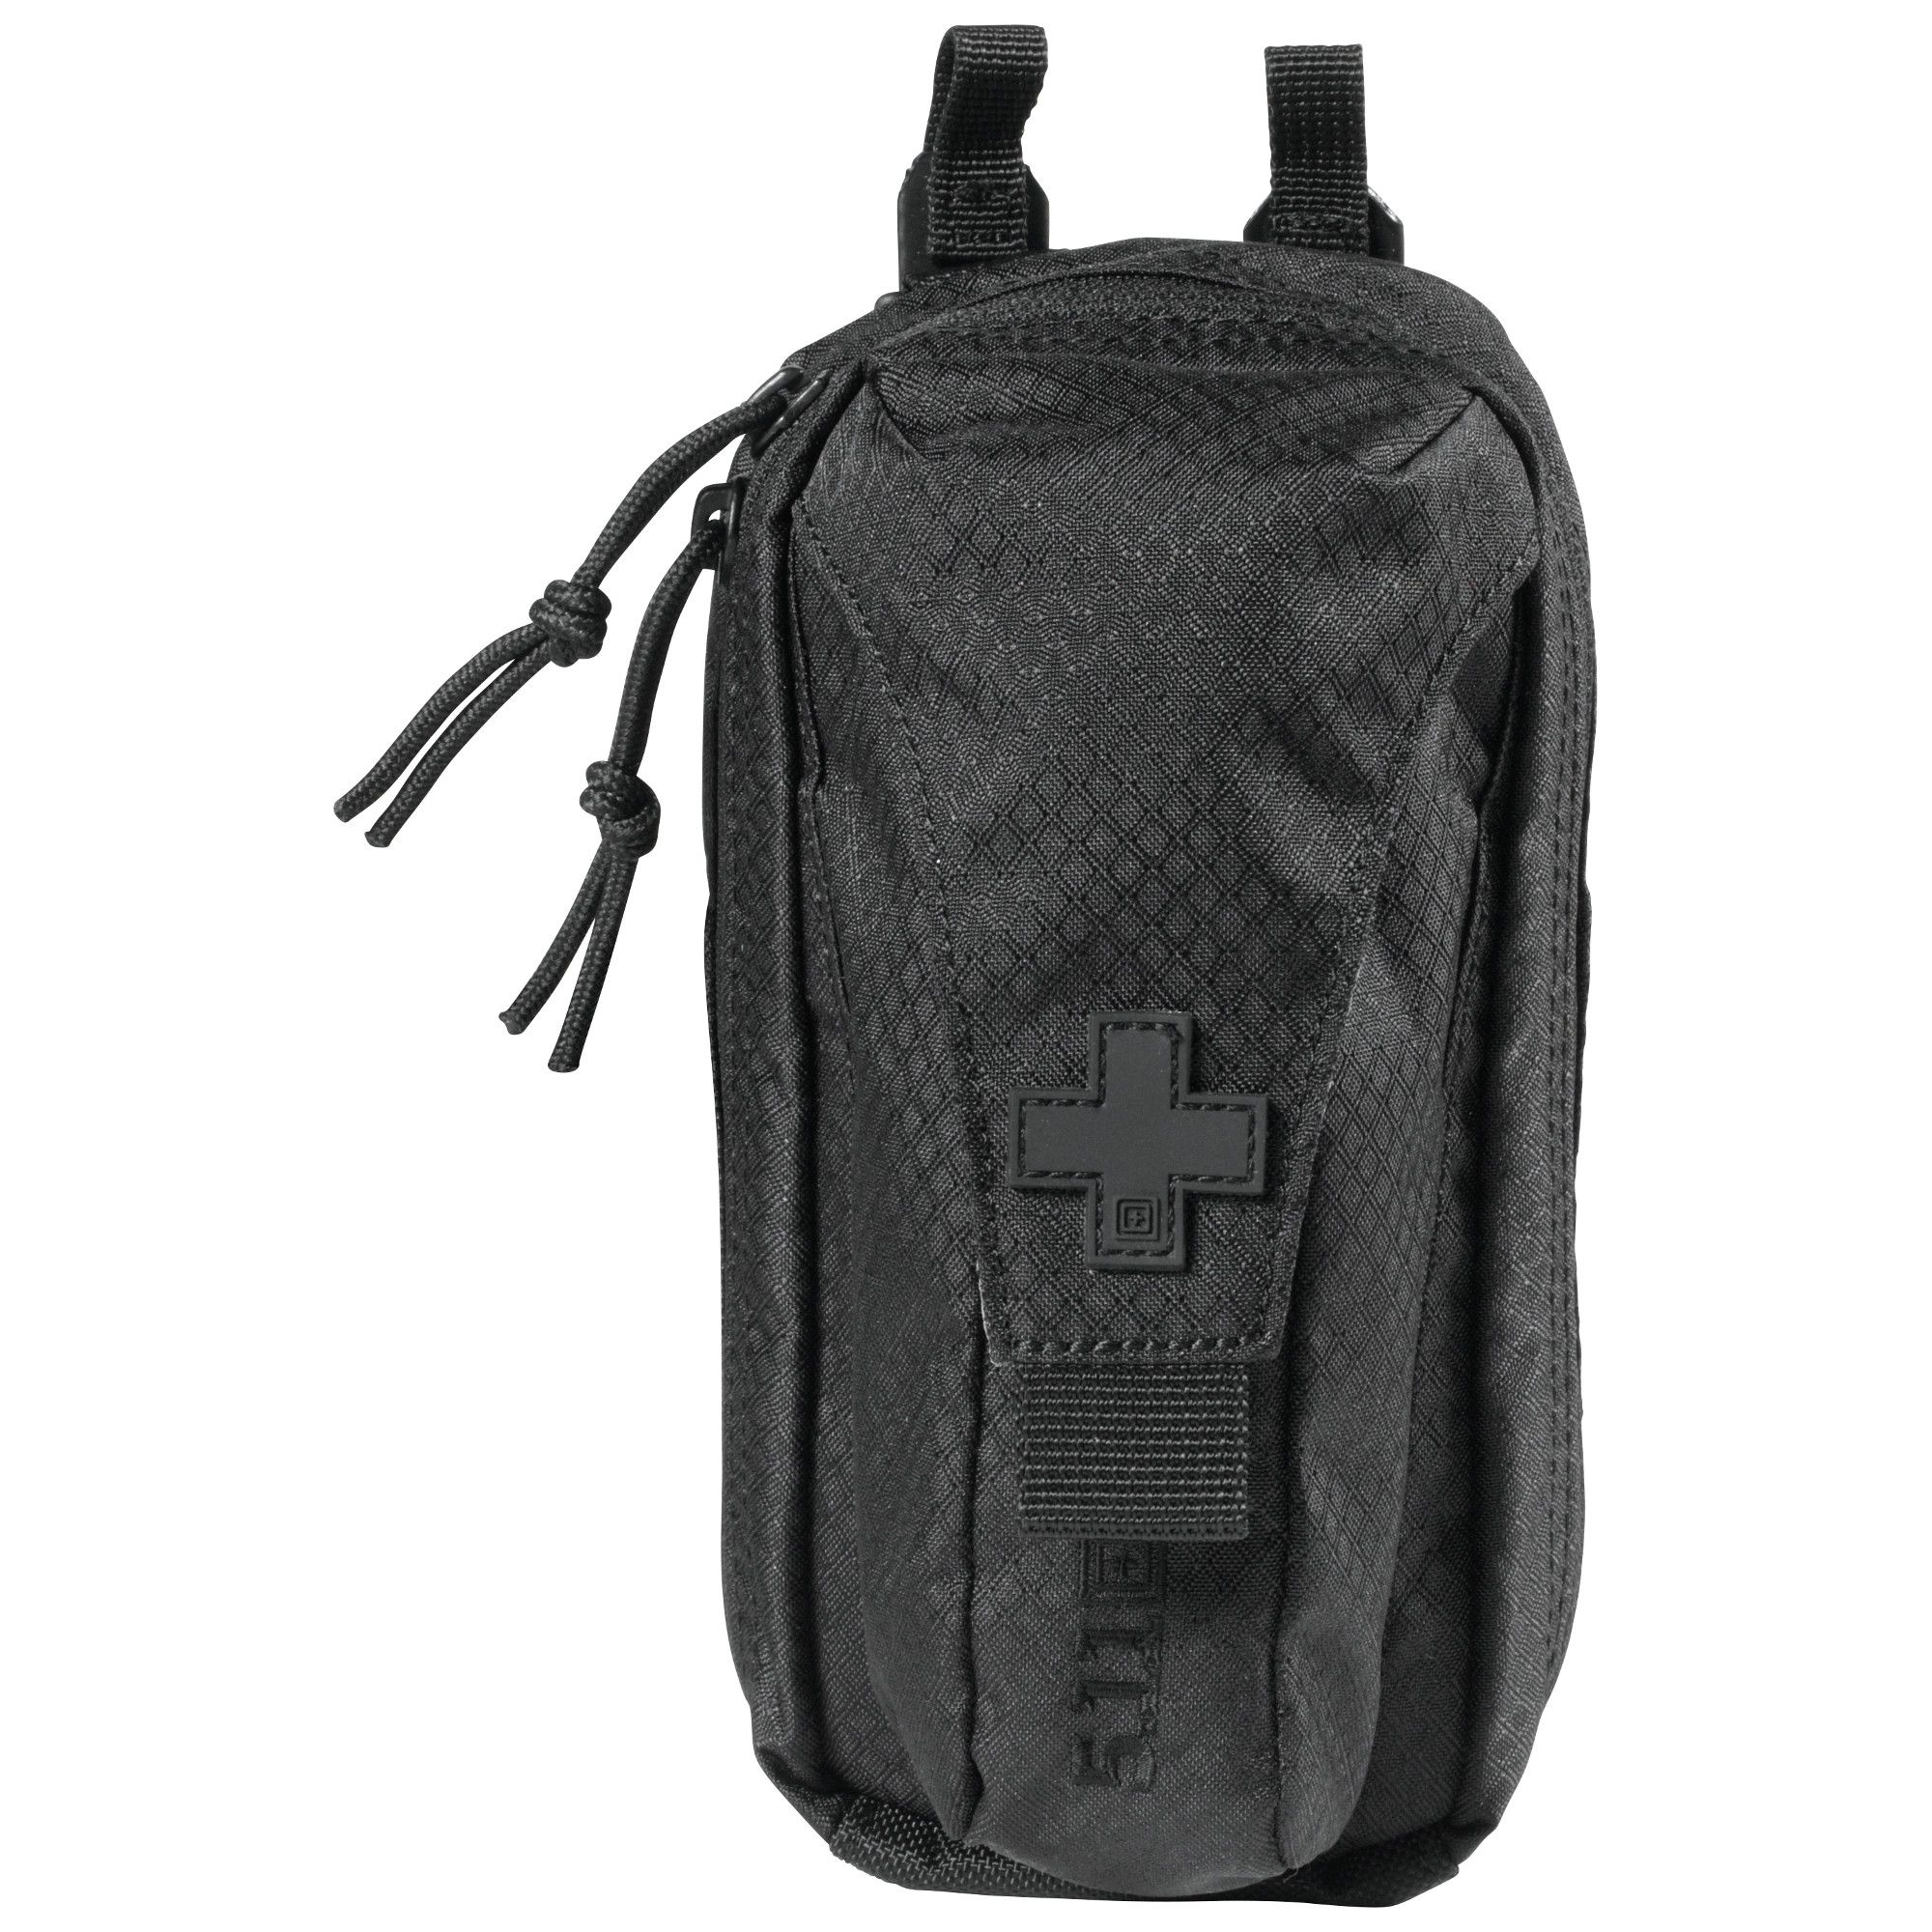 IGNITOR MED POUCH – Black